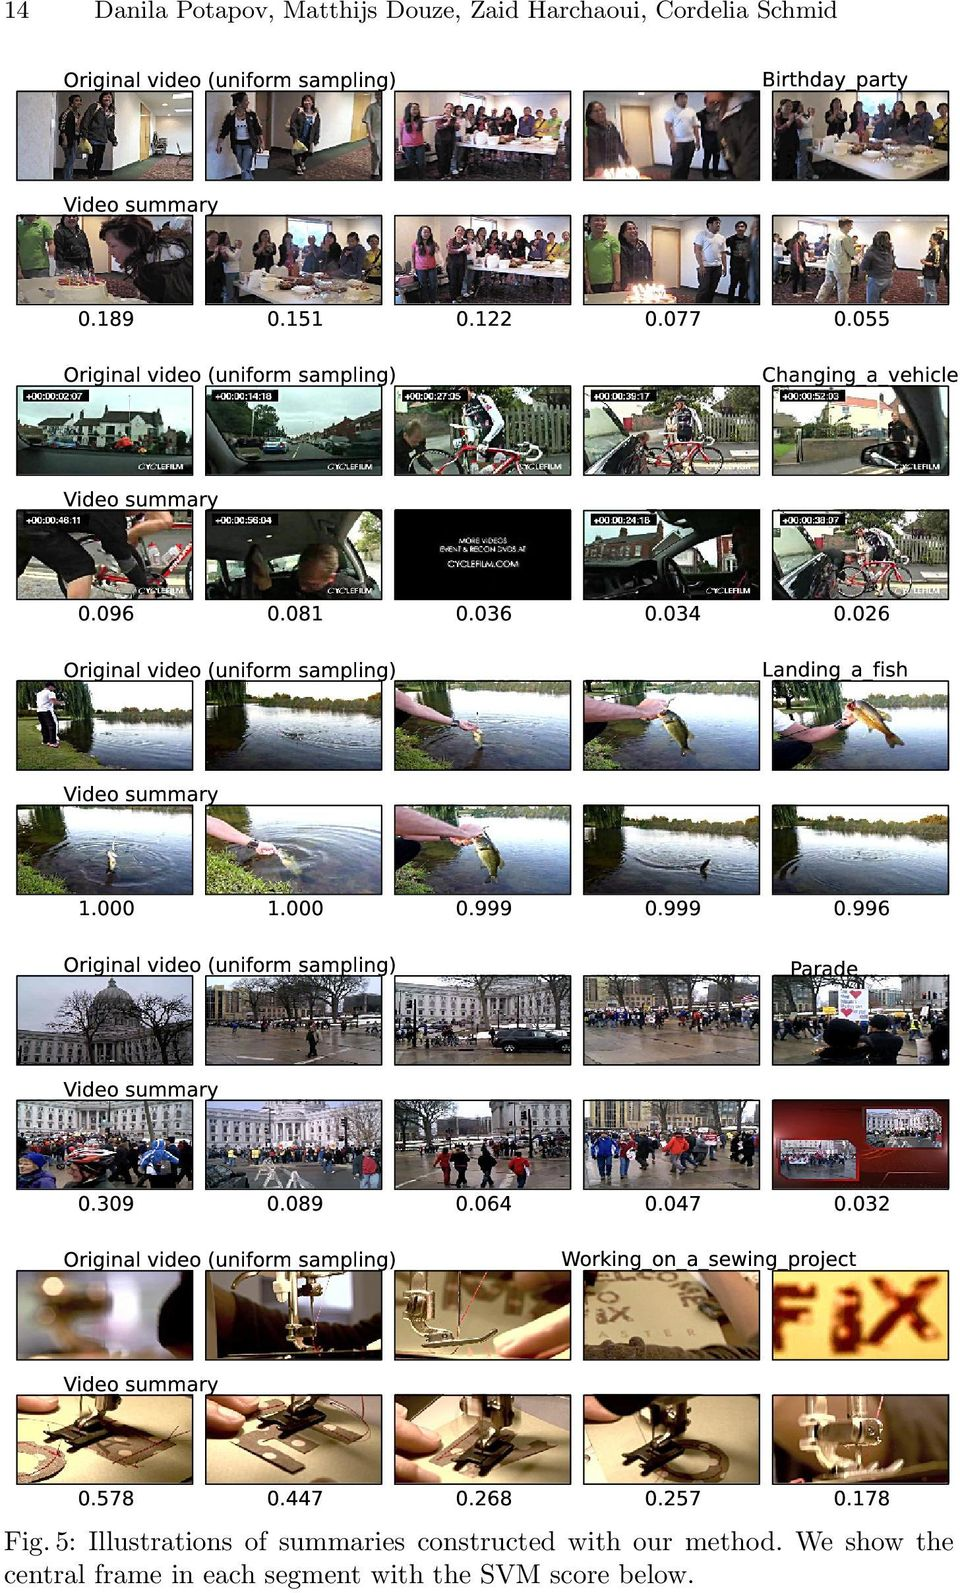 026 Original video (uniform sampling) Landing_a_fish Video summary 1.000 1.000 0.999 0.999 0.996 Original video (uniform sampling) Parade Video summary 0.309 0.089 0.